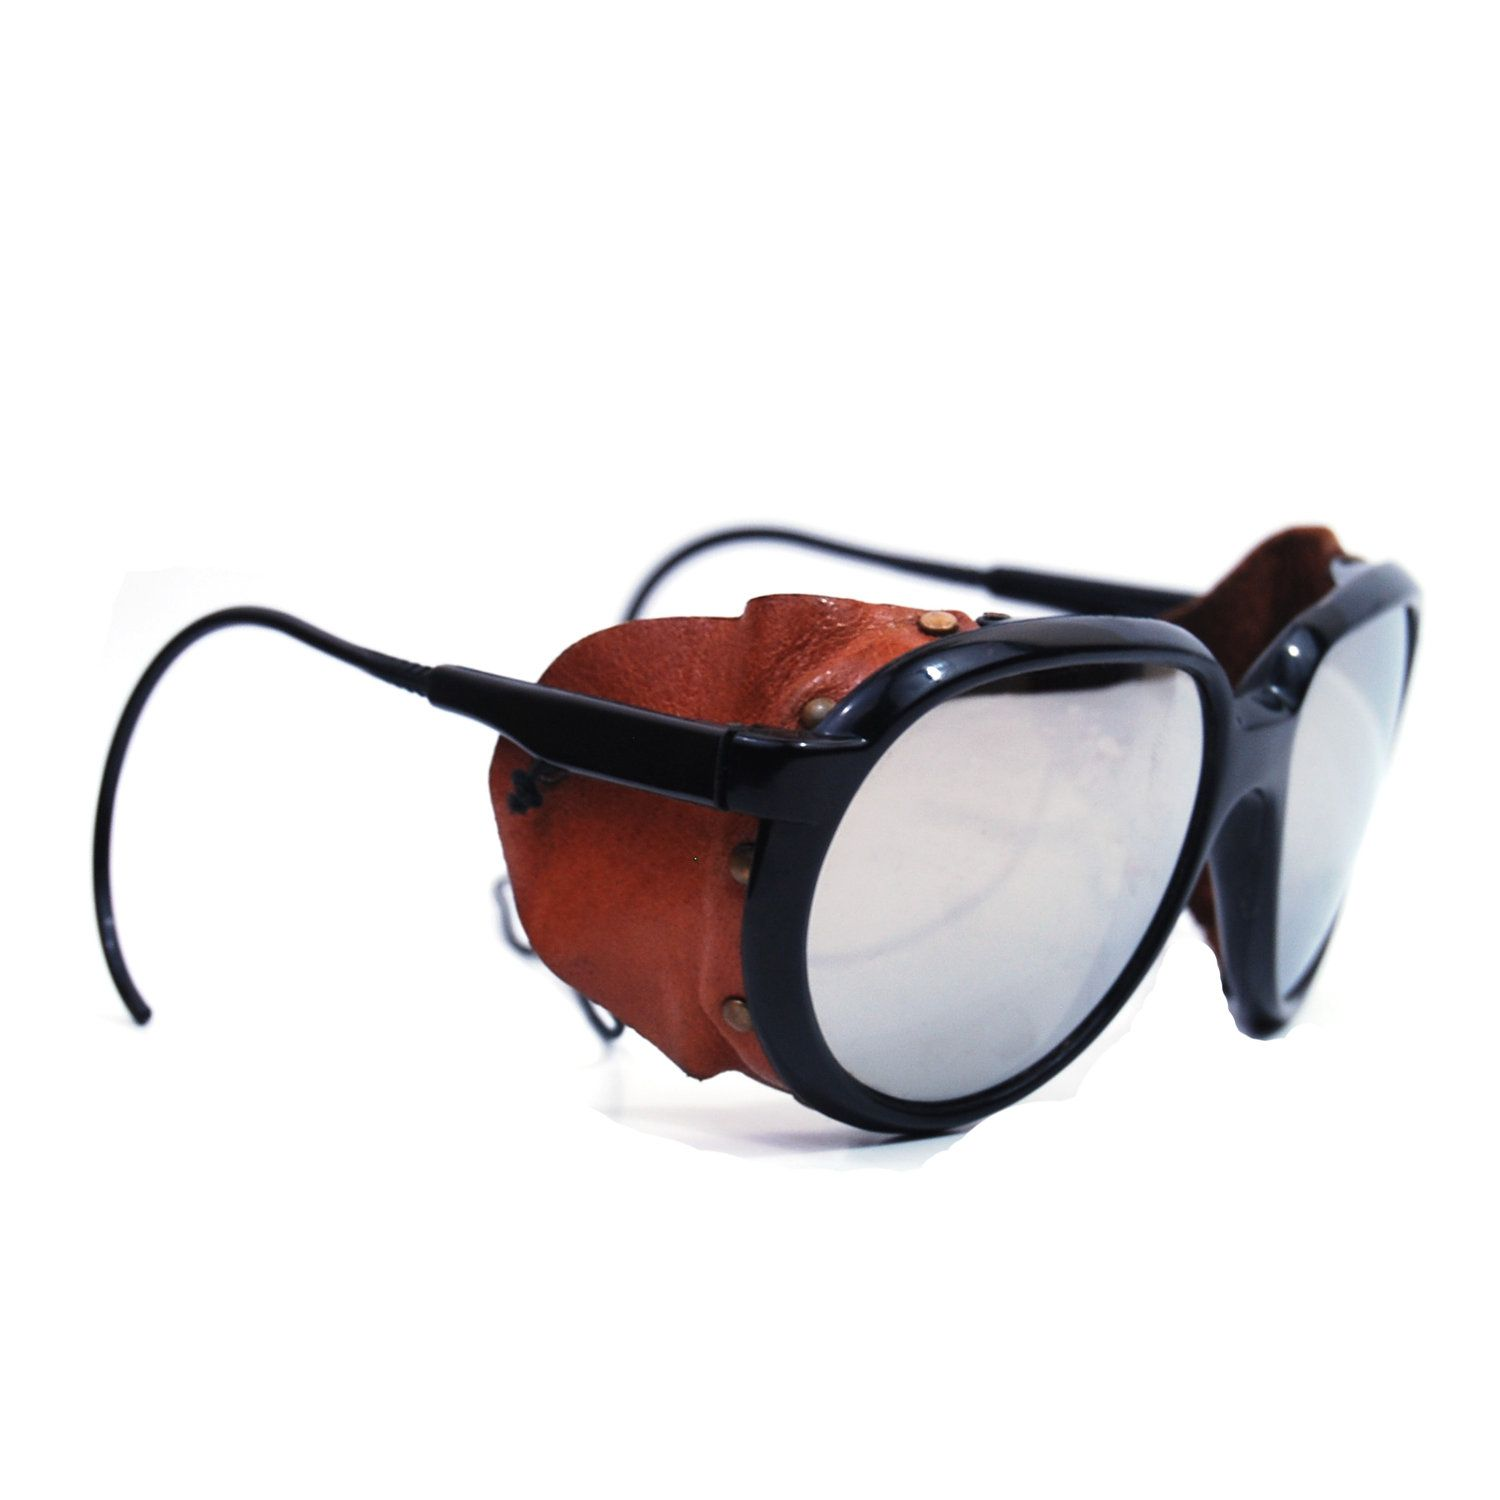 Vintage Ray Ban Bausch & Lomb Glacier Arctic Cats Leather Sunglasses